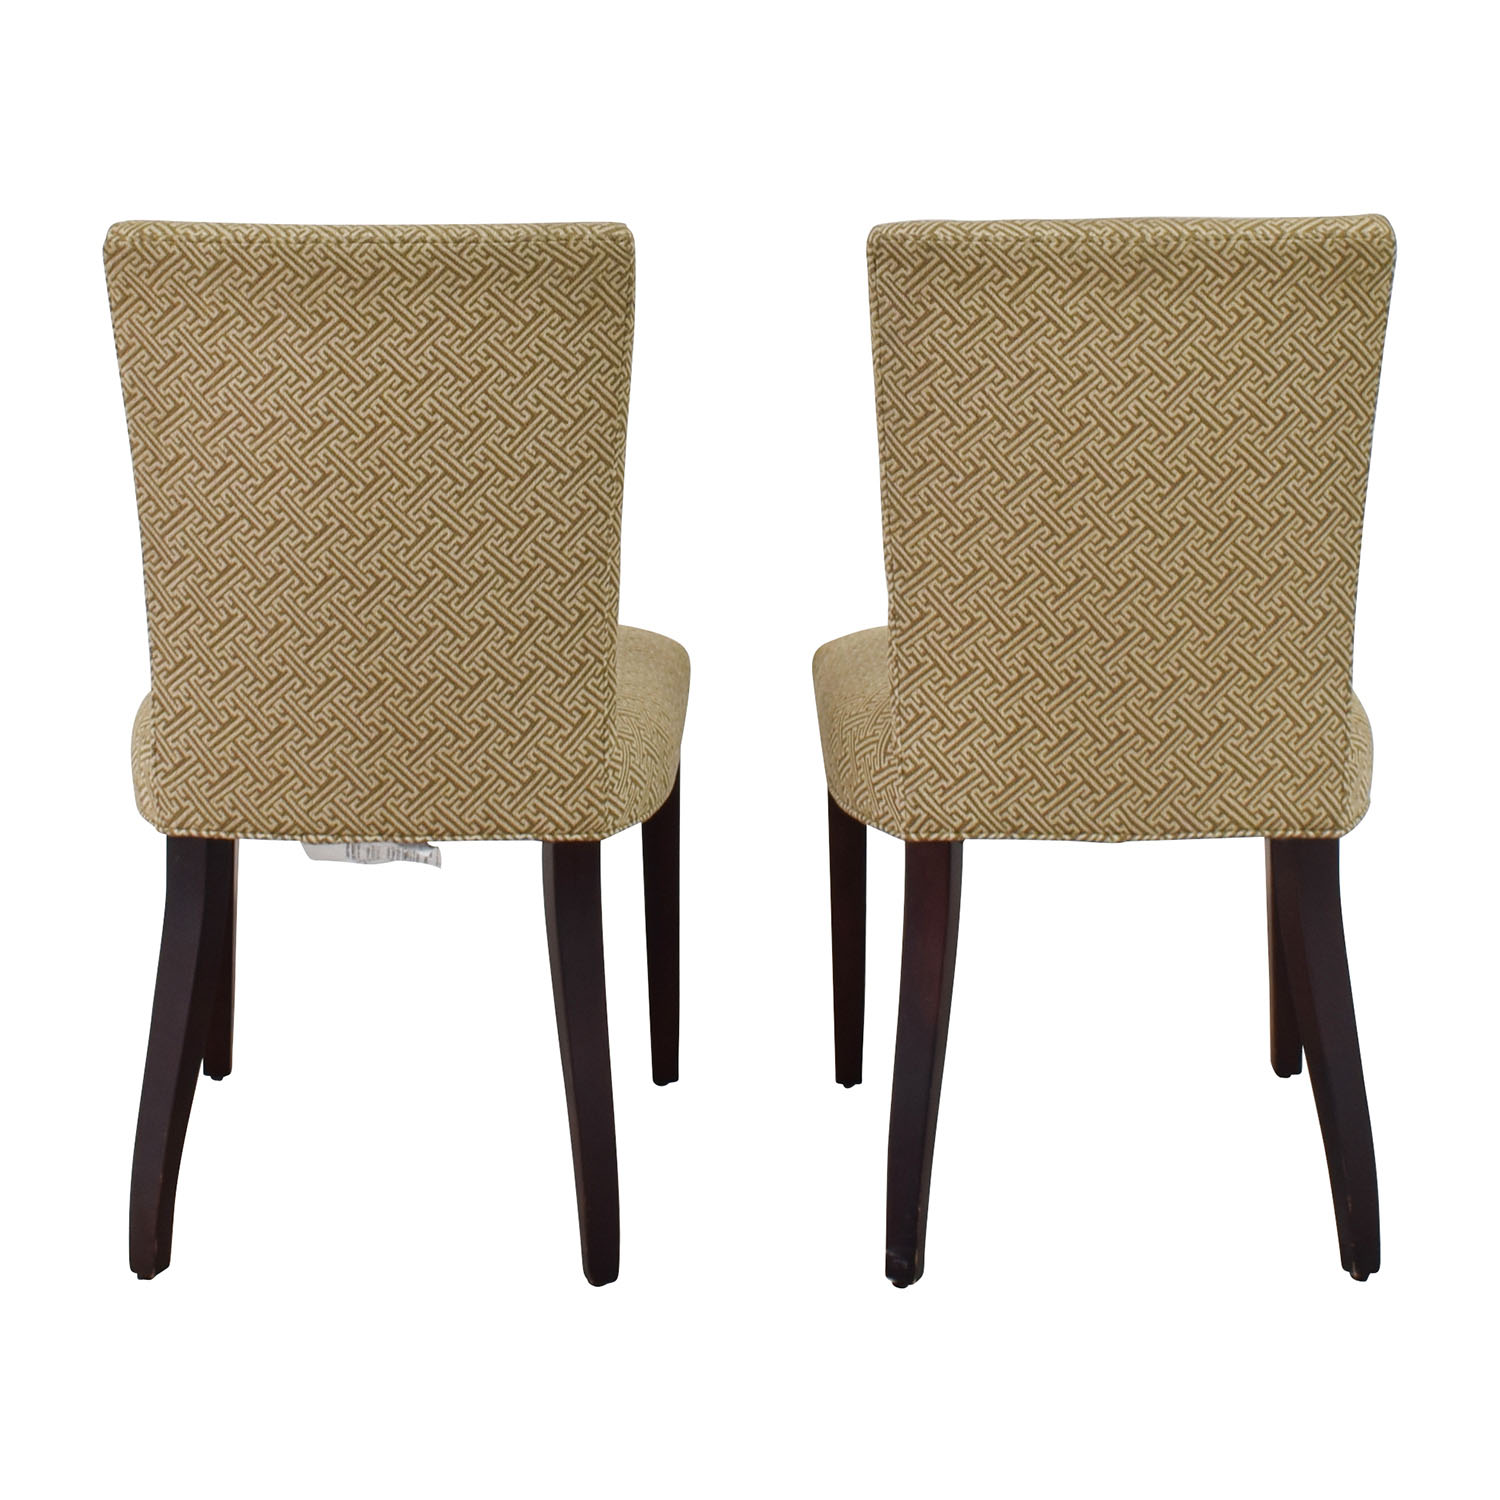 Room & Board Room & Board Ansel Beige Dining Chairs dimensions